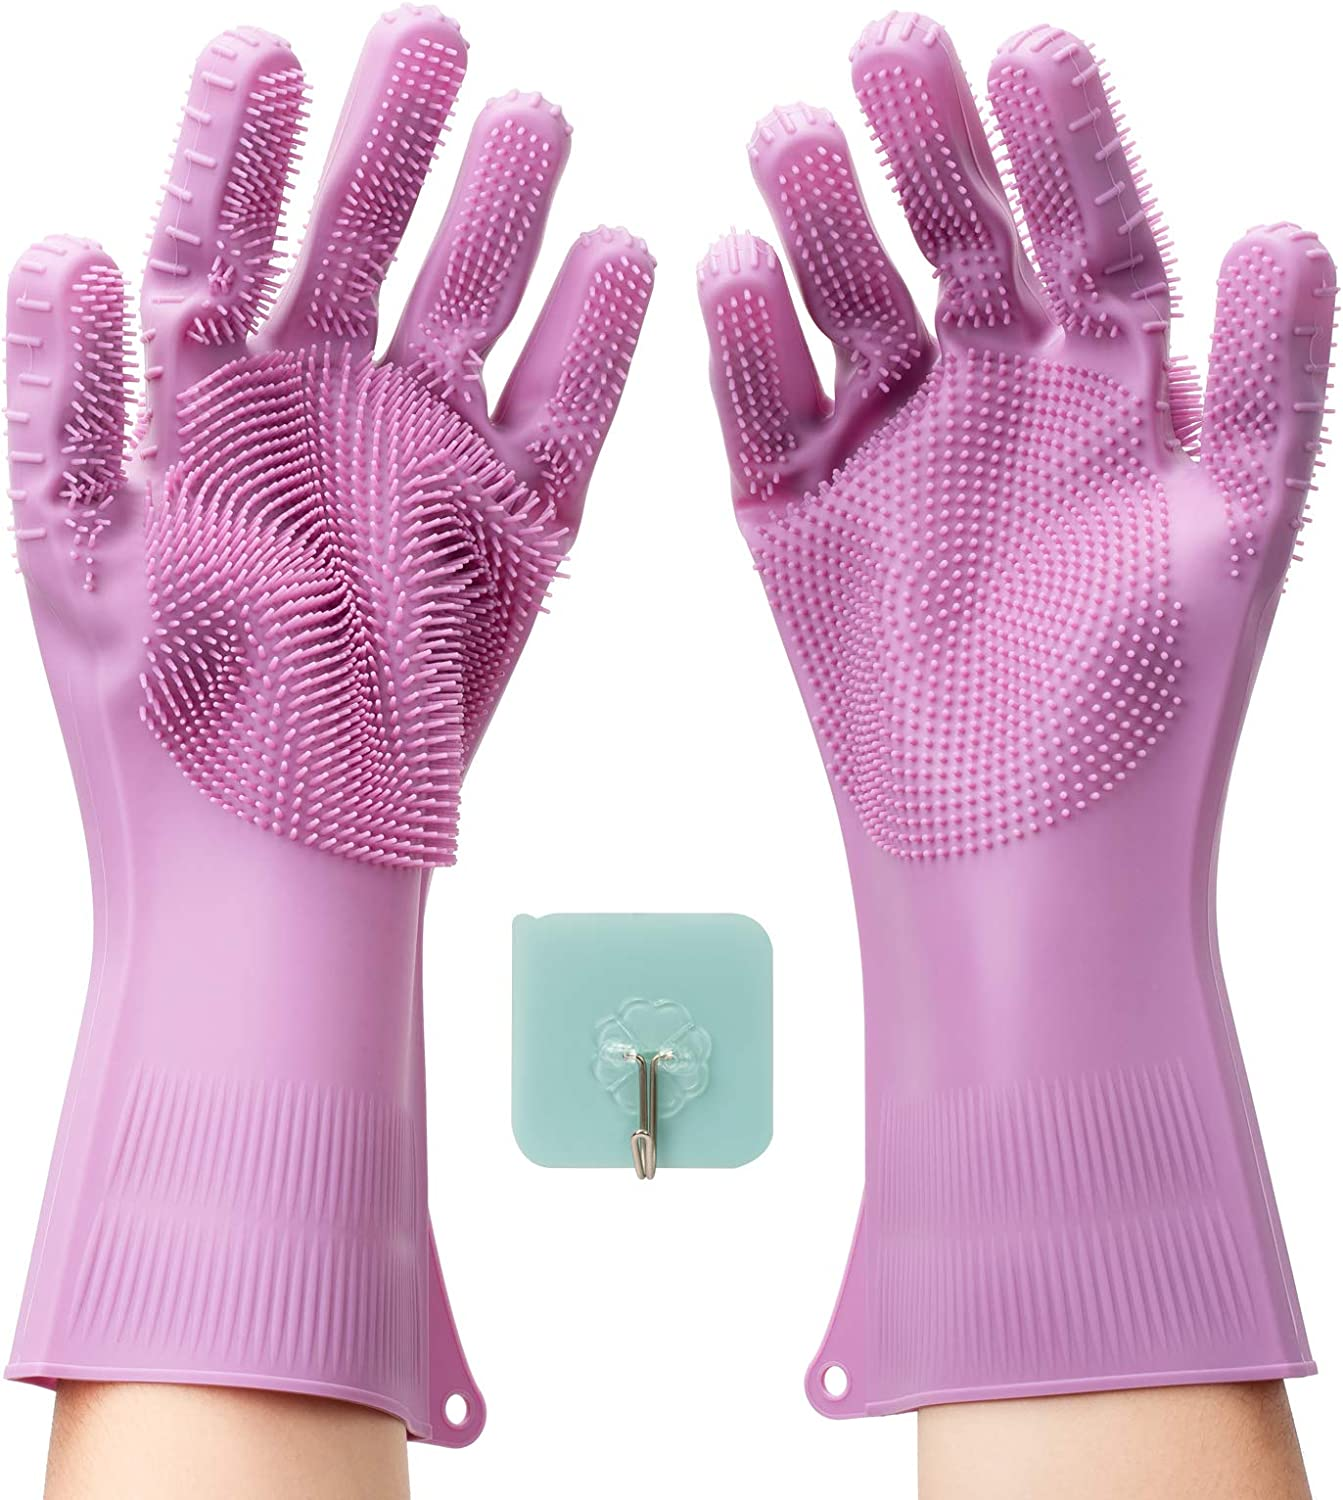 Yiwanda 2 Faced Brushes Dishwashing Gloves All items free shipping Silicone Max 73% OFF Waterproof R